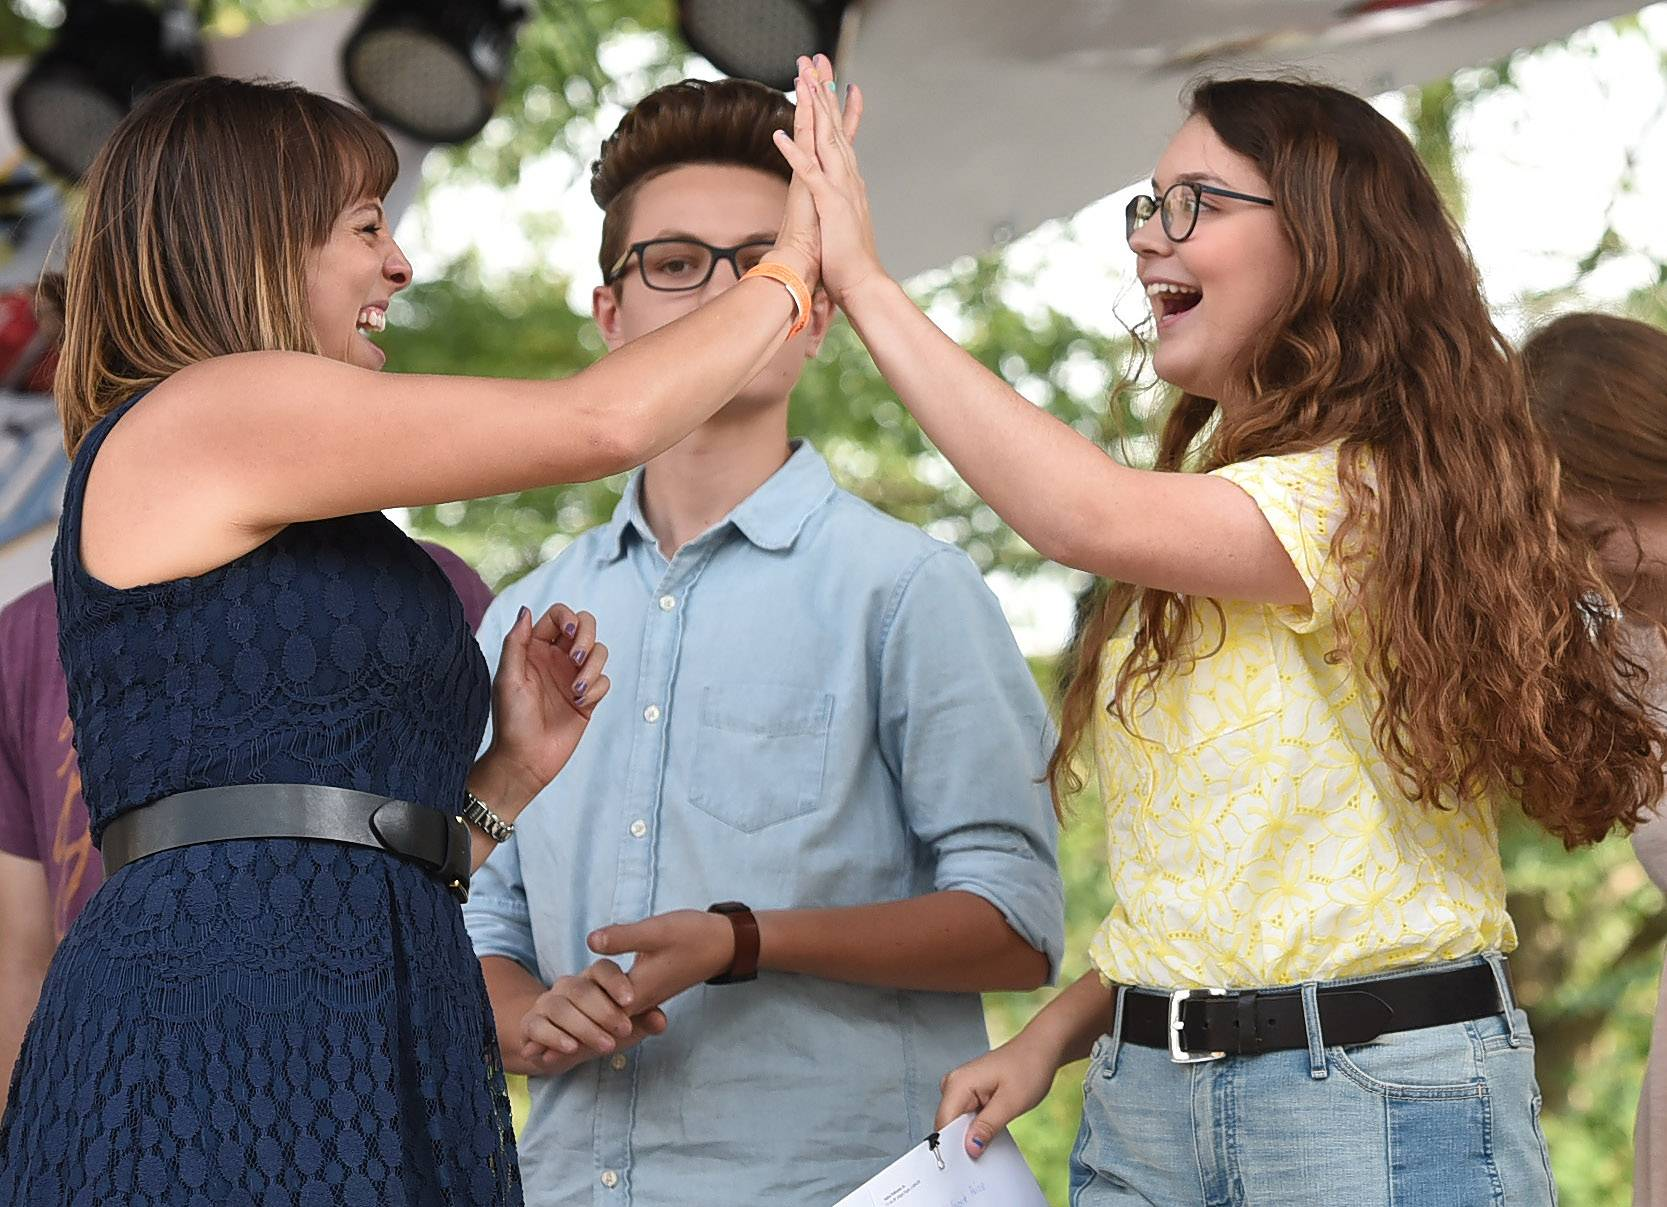 Kayla Seeber of Poplar Grove, right, is congratulated by Cassandra Henwood of Elgin after being named Fan Favorite at the 2017 Suburban Chicago's Got Talent finale on Saturday at the Taste of Arlington Heights. Looking on is Belvidere singer-songwriter Adem Dalipi.